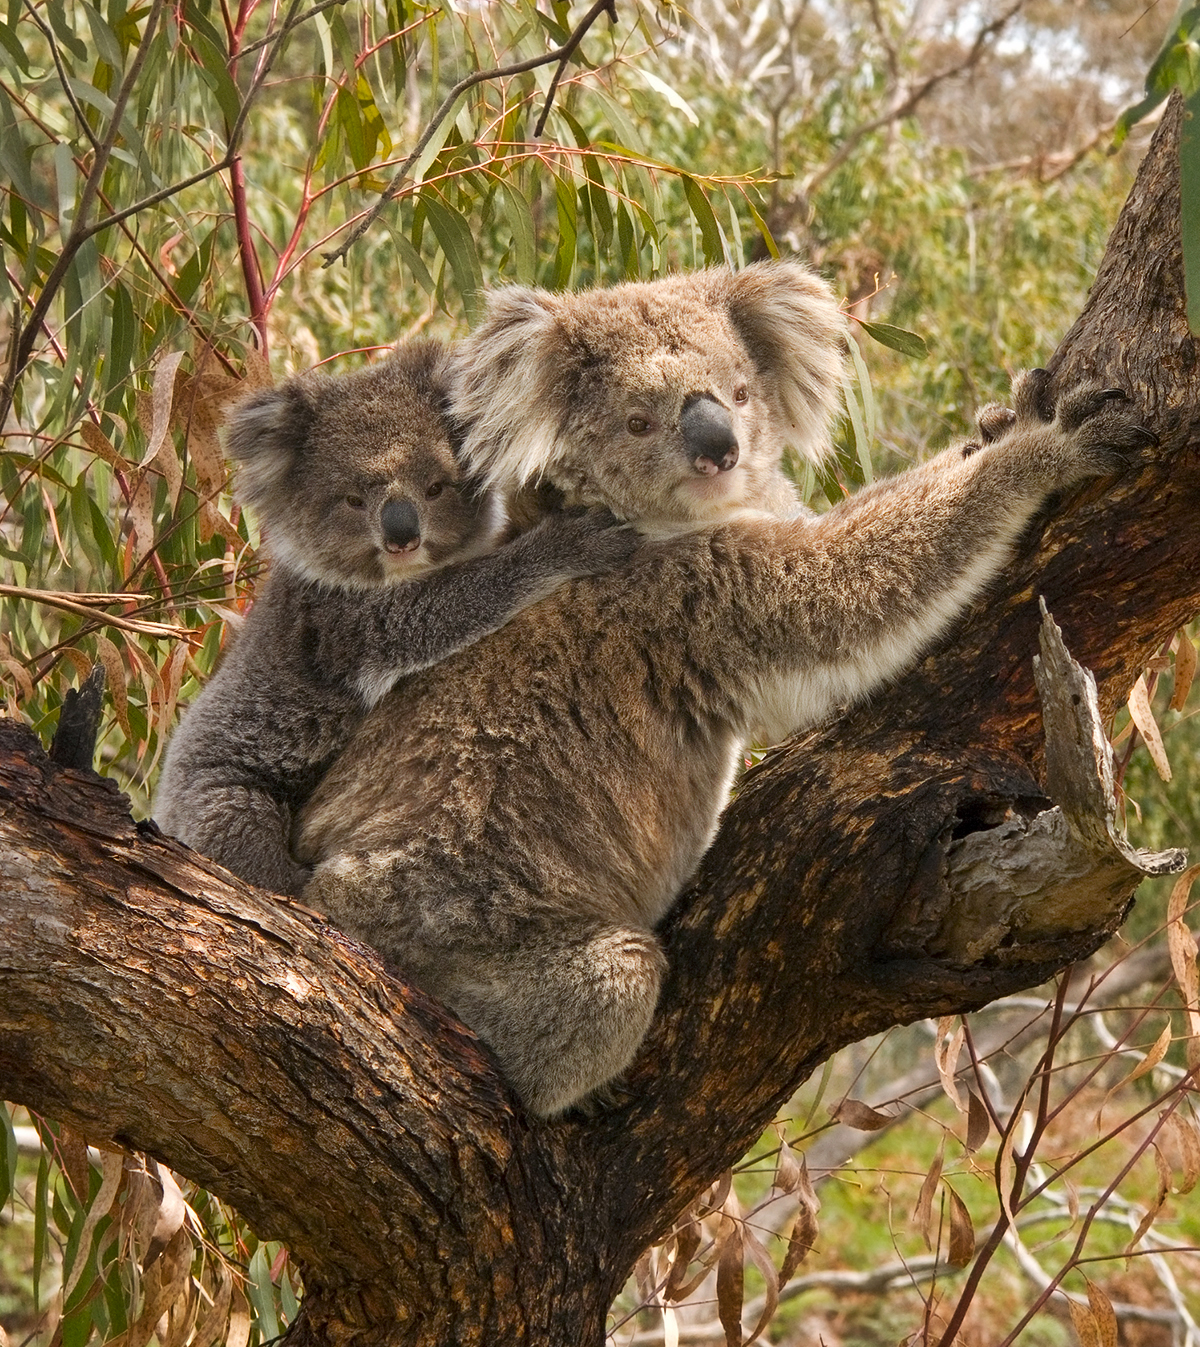 koala reproduction and development